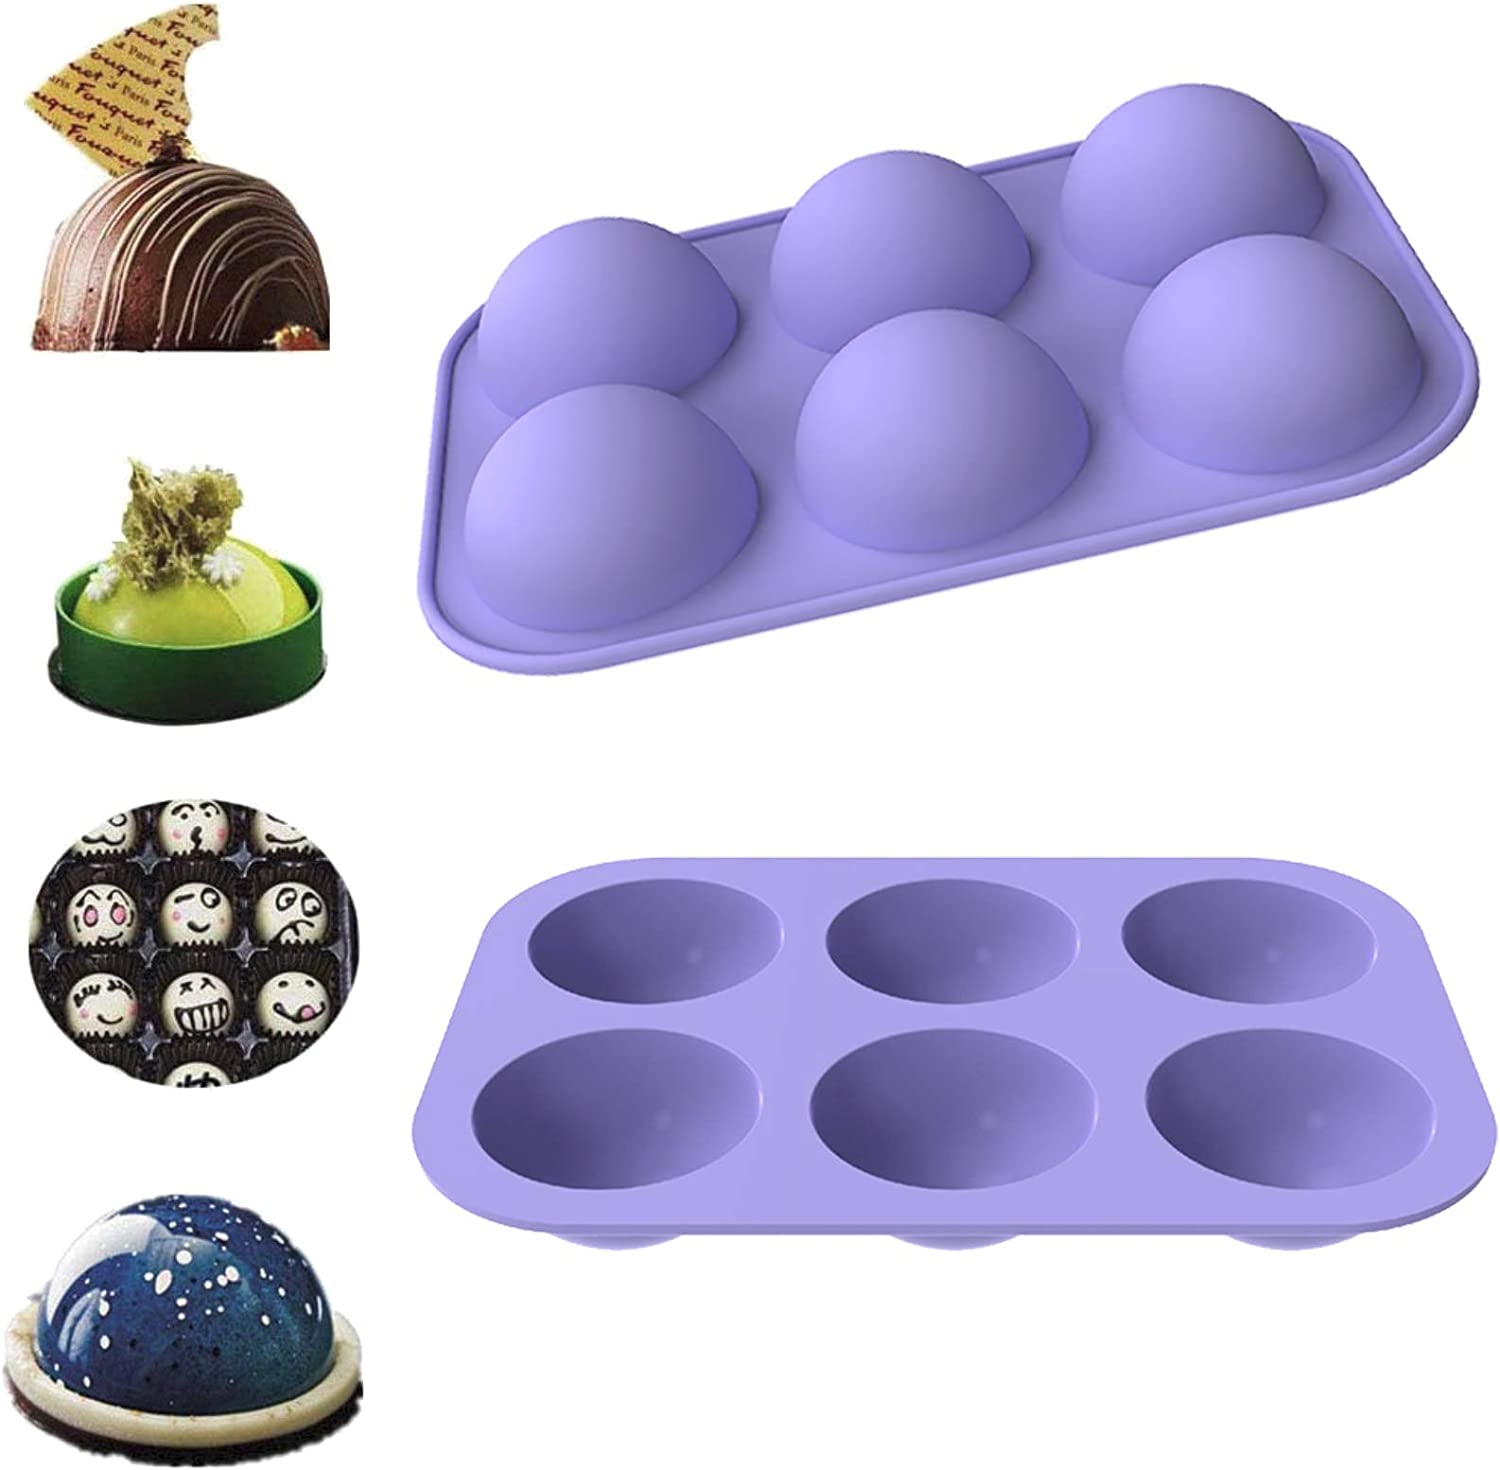 Silicone Chocolate Candy Mold,6 Half 2.2